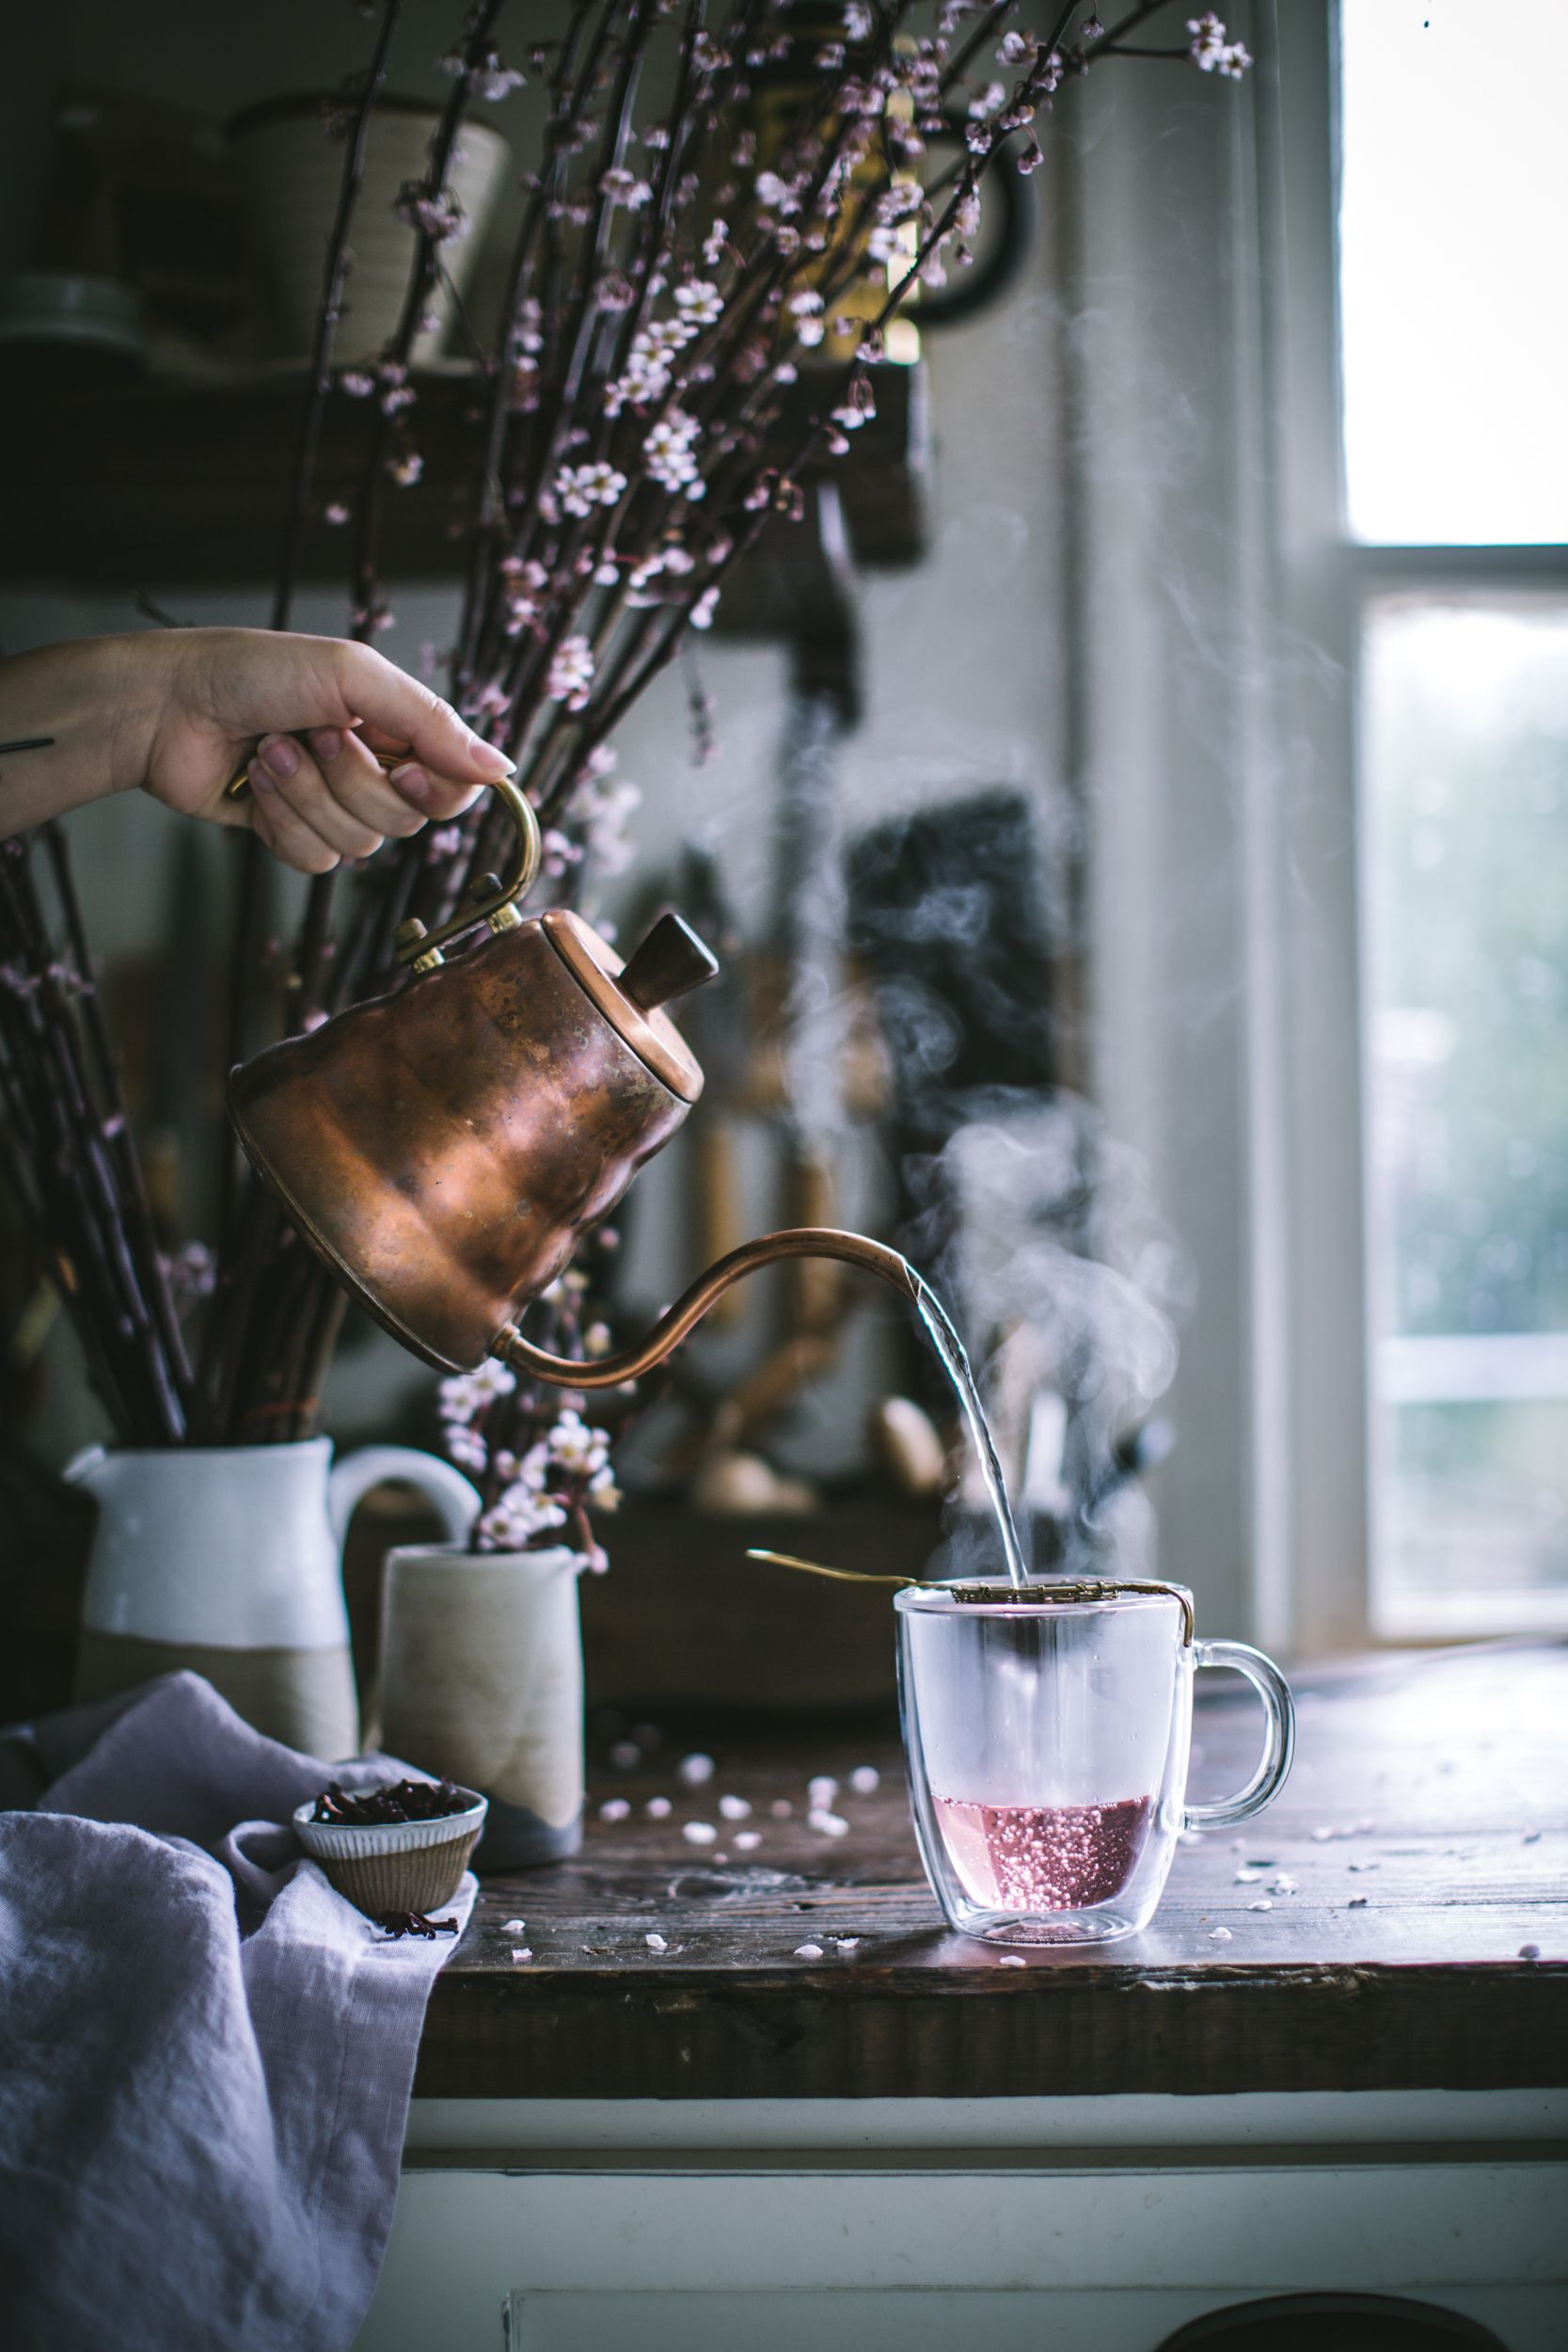 Try This Amazing Recipe For Not Only A Vanilla Latte But A Hibiscus Vanilla Latte I Am So In Love With The Color Vanilla Tea Latte Vanilla Latte Vanilla Tea